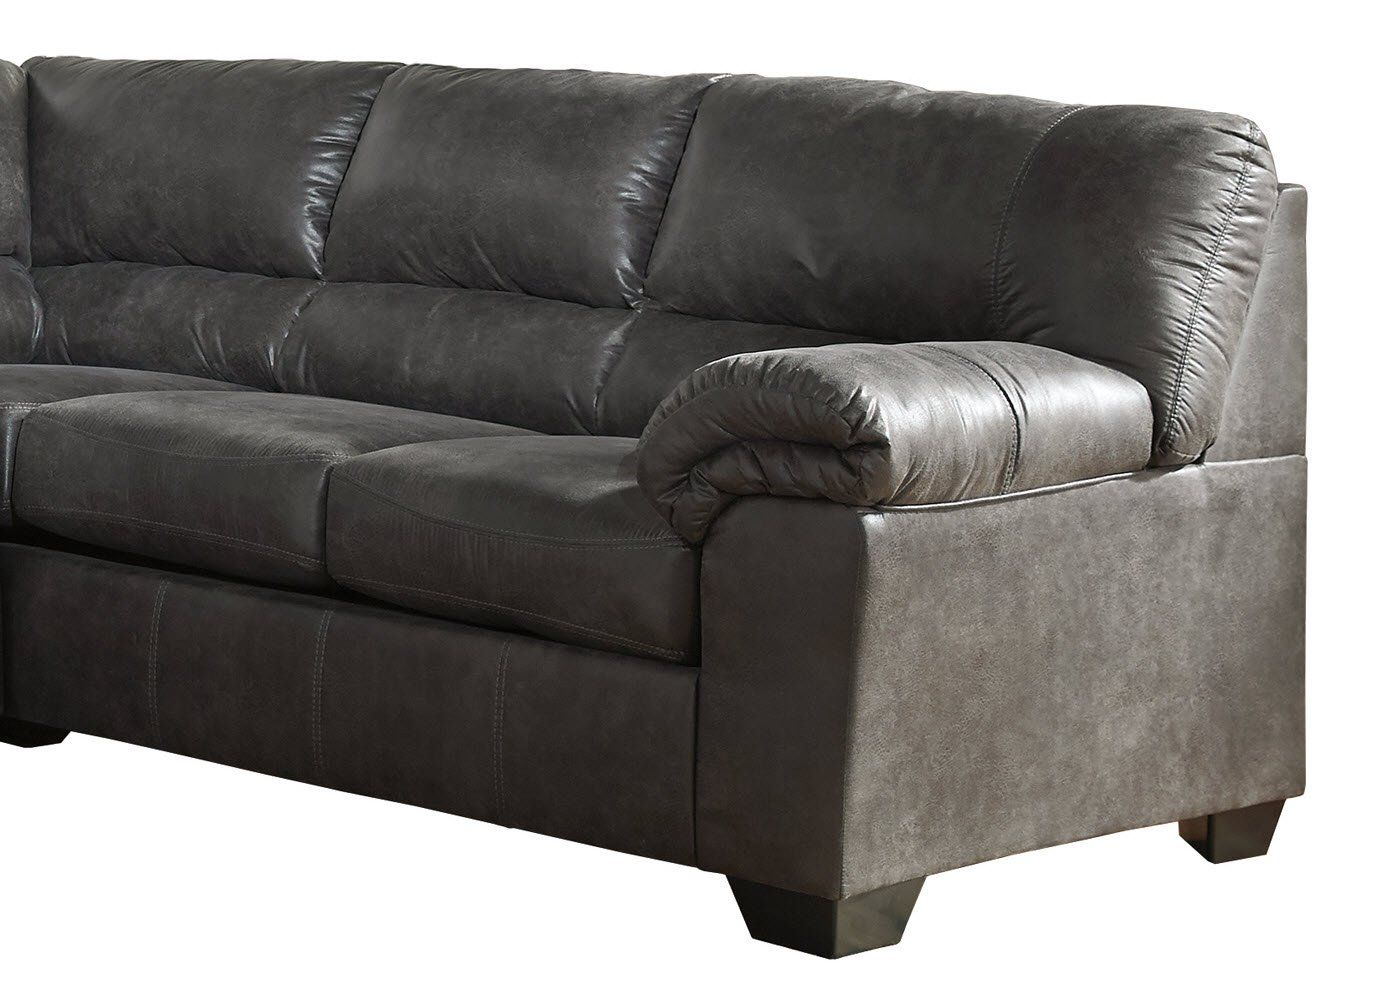 Ashley Furniture Signature Design Bladen Contemporary Right Arm Facing Loveseat Sectional Co Couch Decor Signature Design Ashley Signature Design